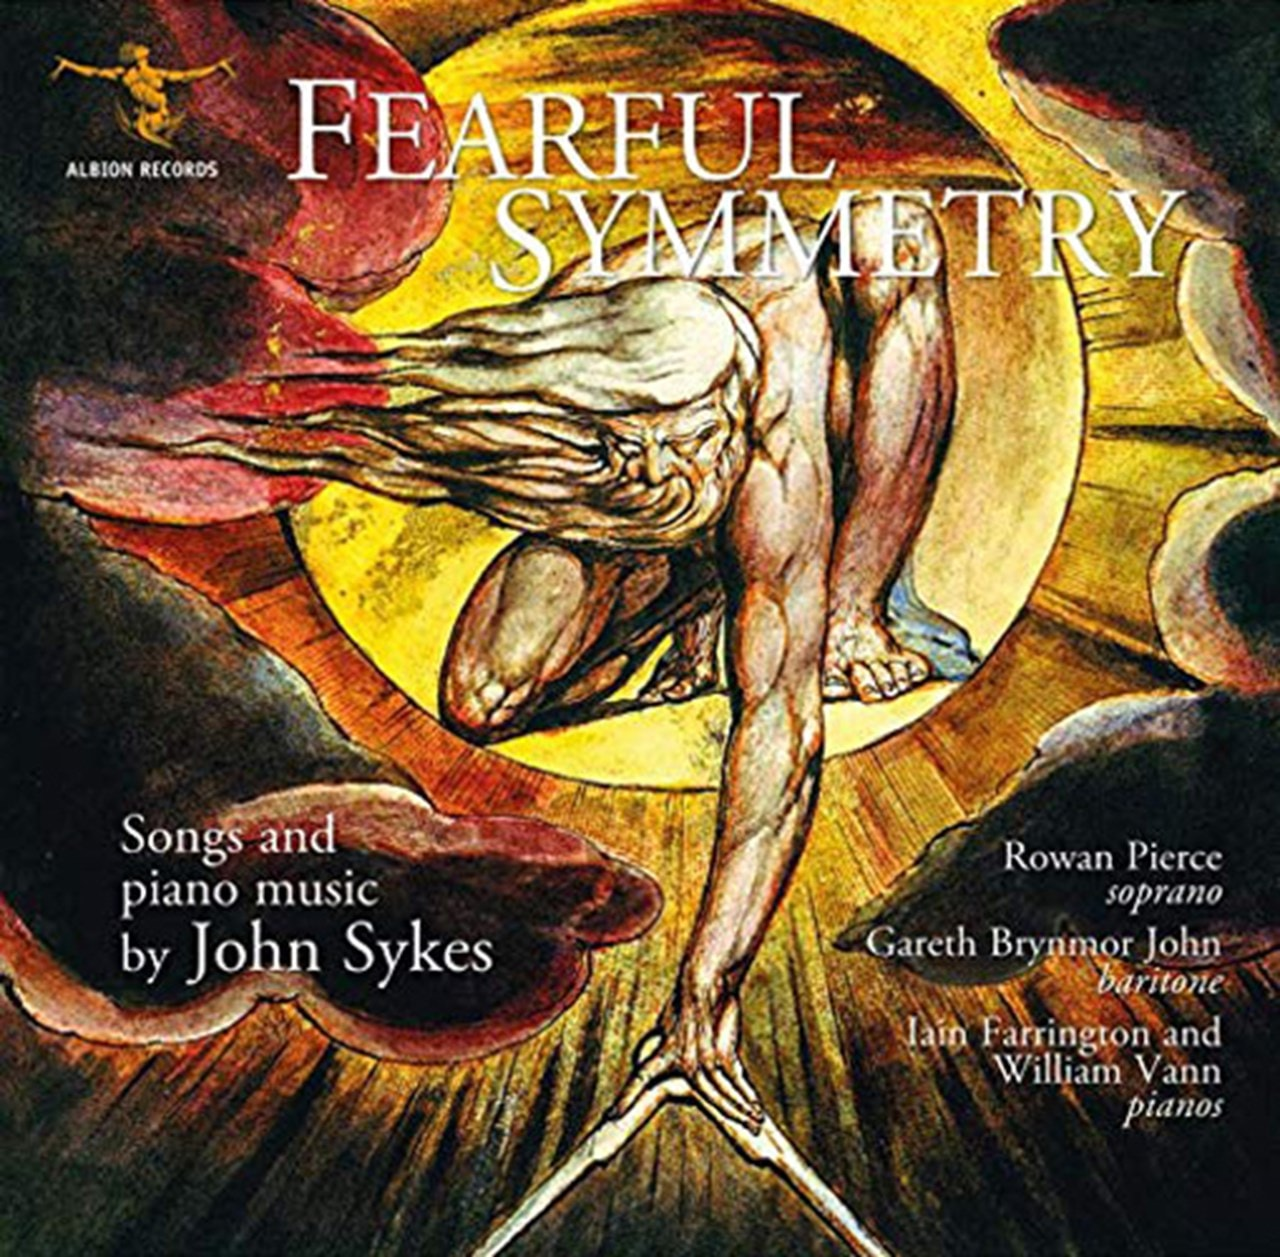 Fearful Symmetry: Songs and Piano Music By John Sykes - 1